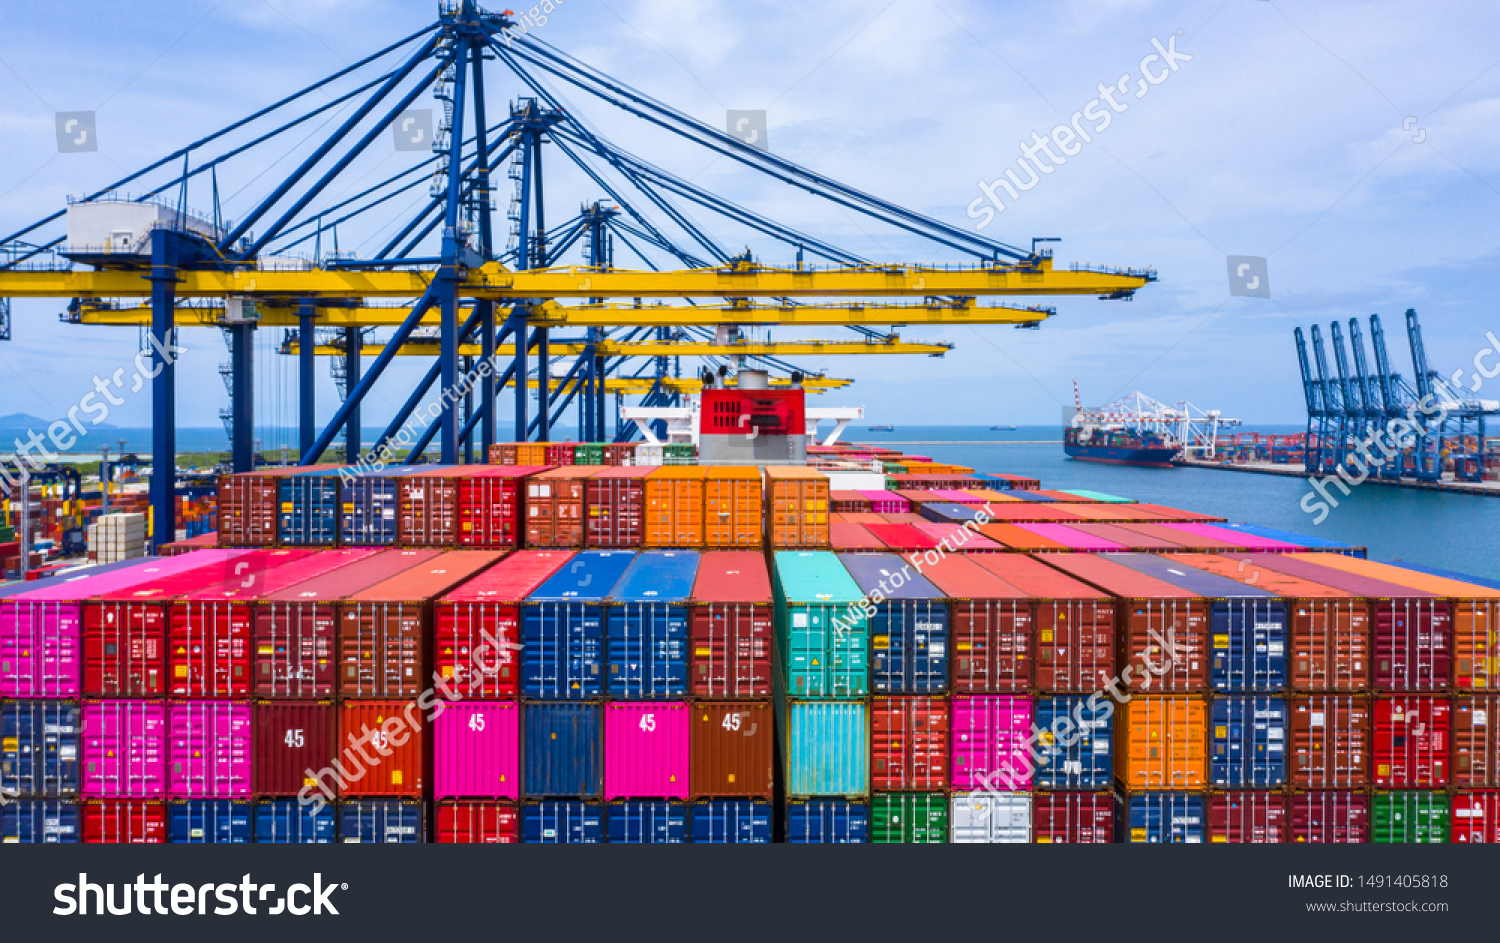 Container ship loading and unloading in sea port, Aerial view of business logistic import and export freight  transportation by container ship in harbor, Container loading Cargo freight ship, Dubai.